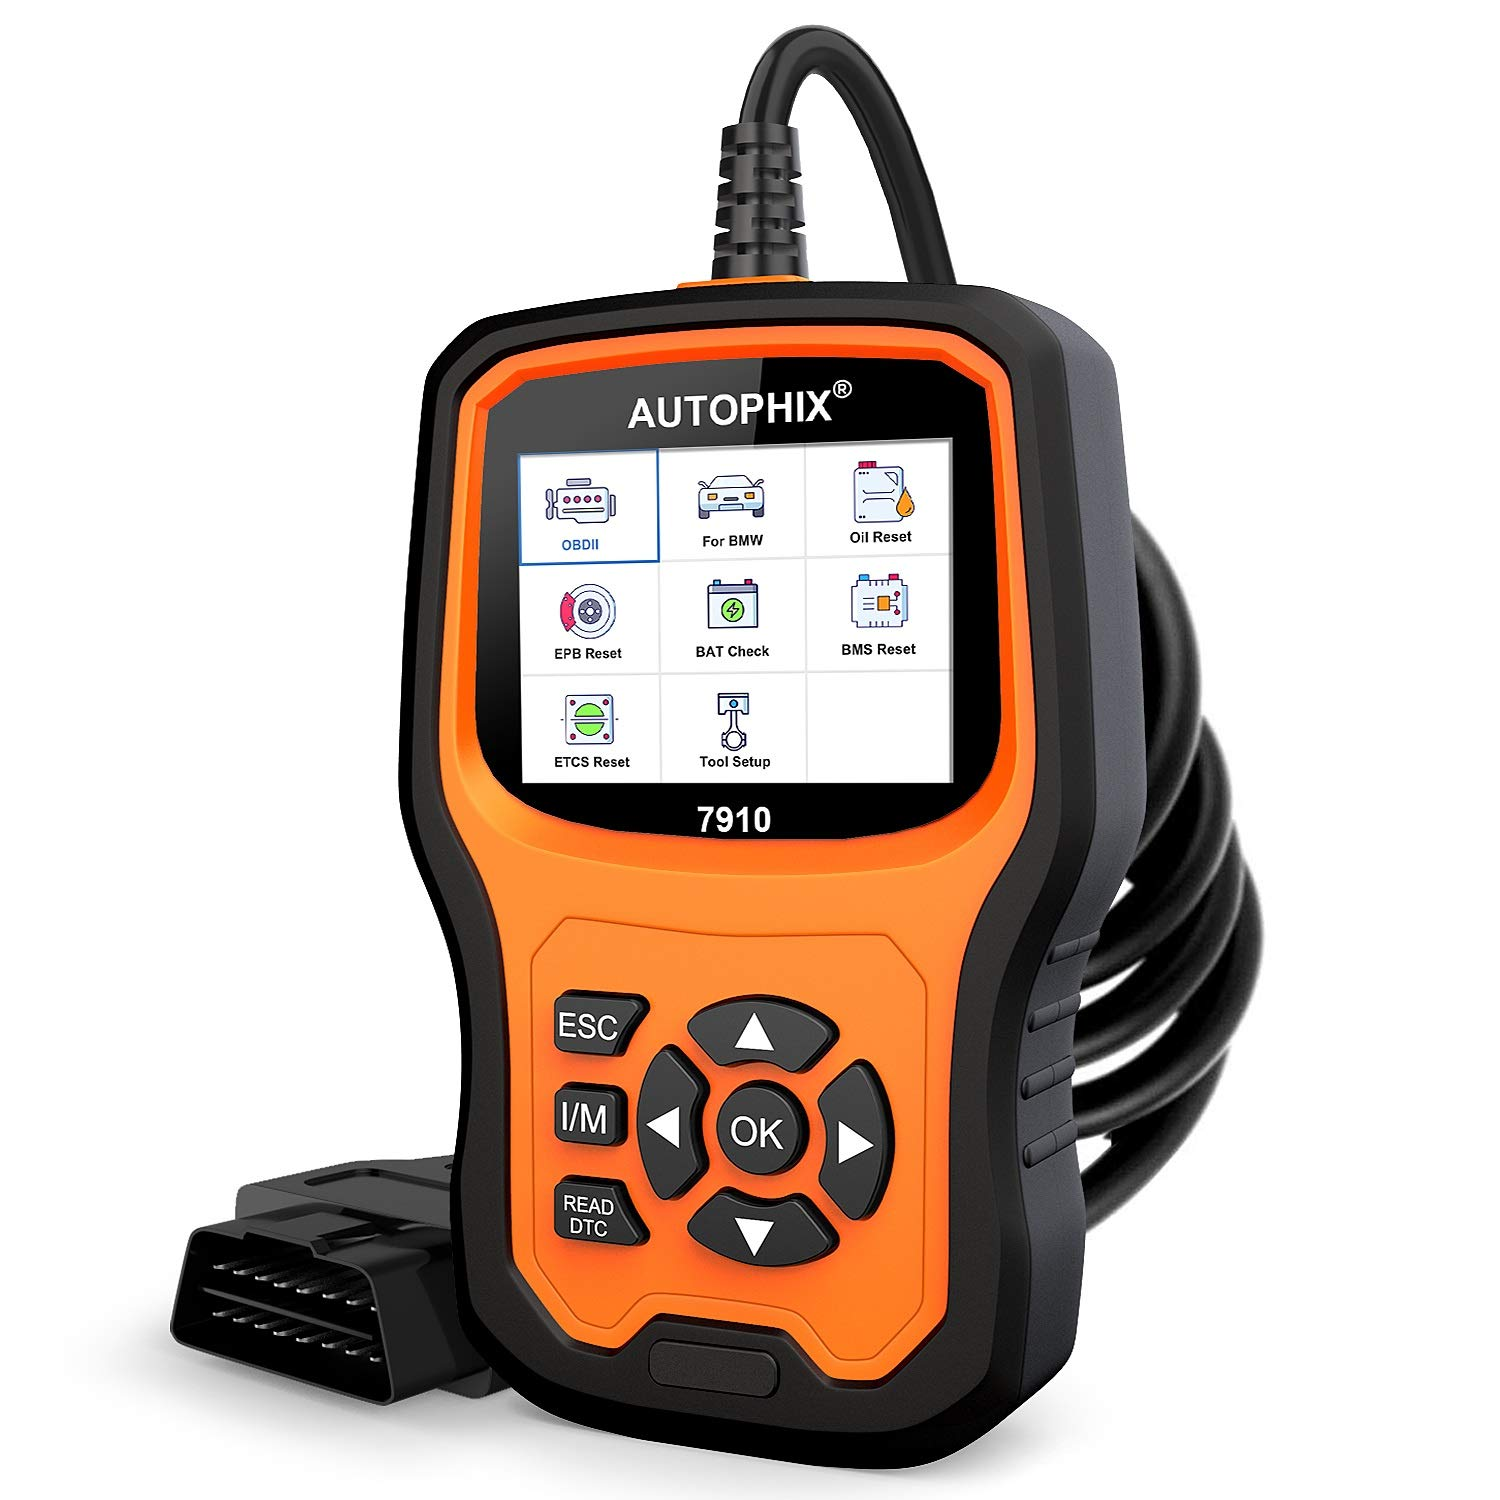 AUTOPHIX Car Diagnostic Scanner Tool for BMW Mini, 7910 OBD2 Readr  Multi-System Auto Fault Code Reader with